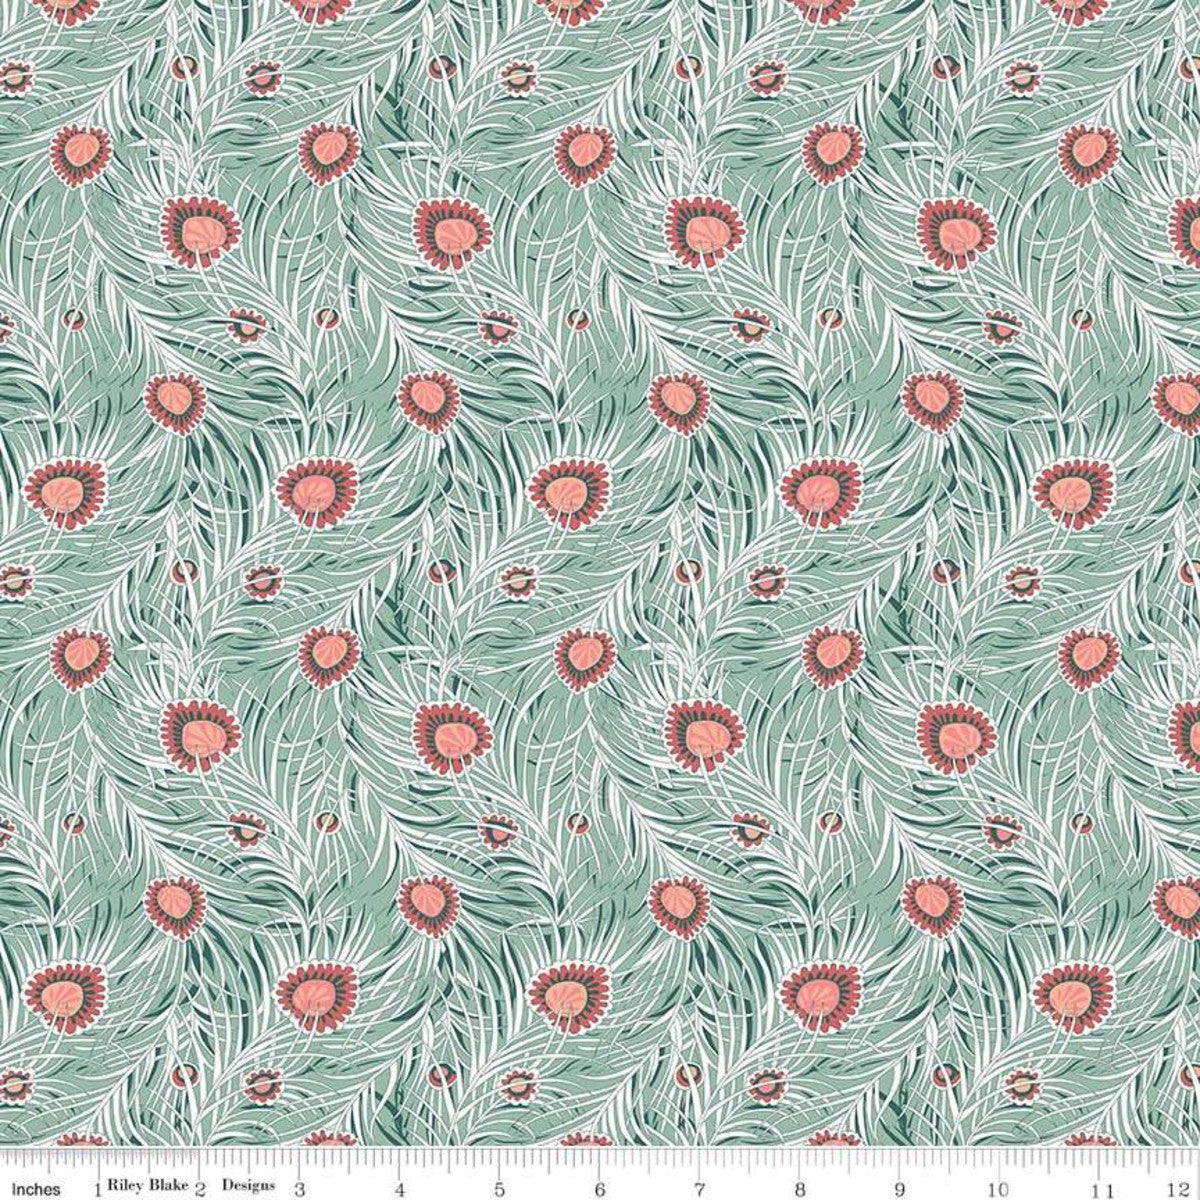 Hesketh House - Piper's Peacock Fabric - Trapunto